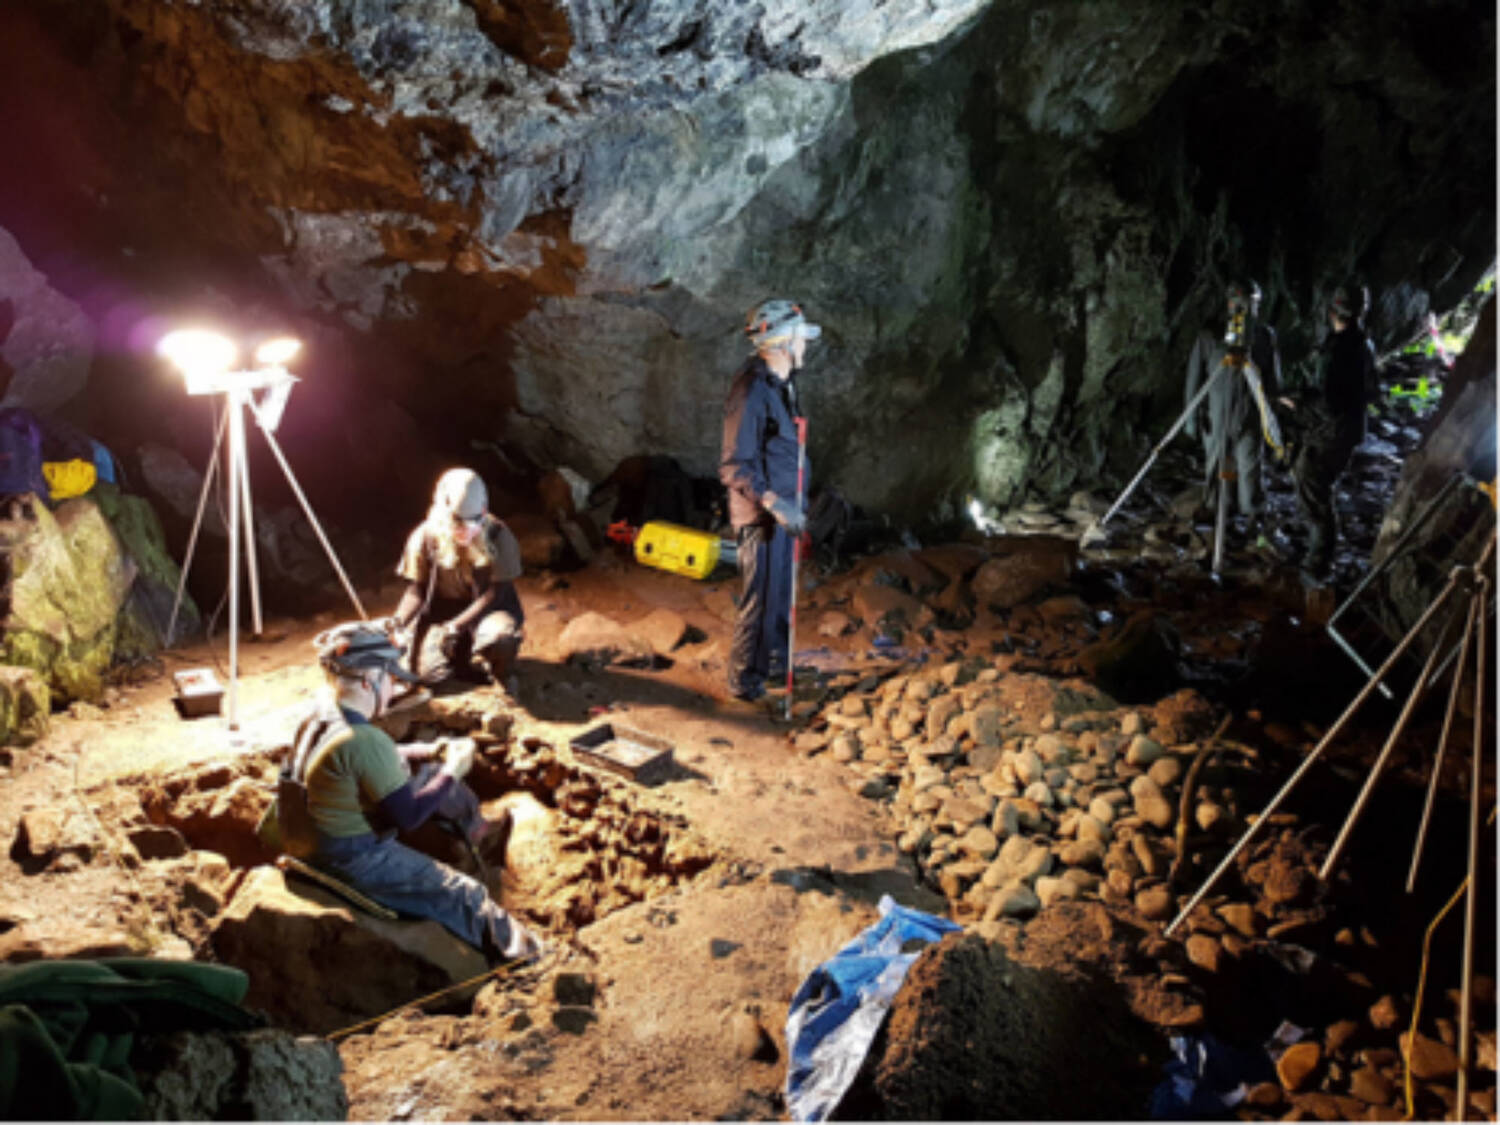 A group of people work in a cave, lit with lamps. A hole has been dug in the floor, and one person sits on a large rock in the hole.